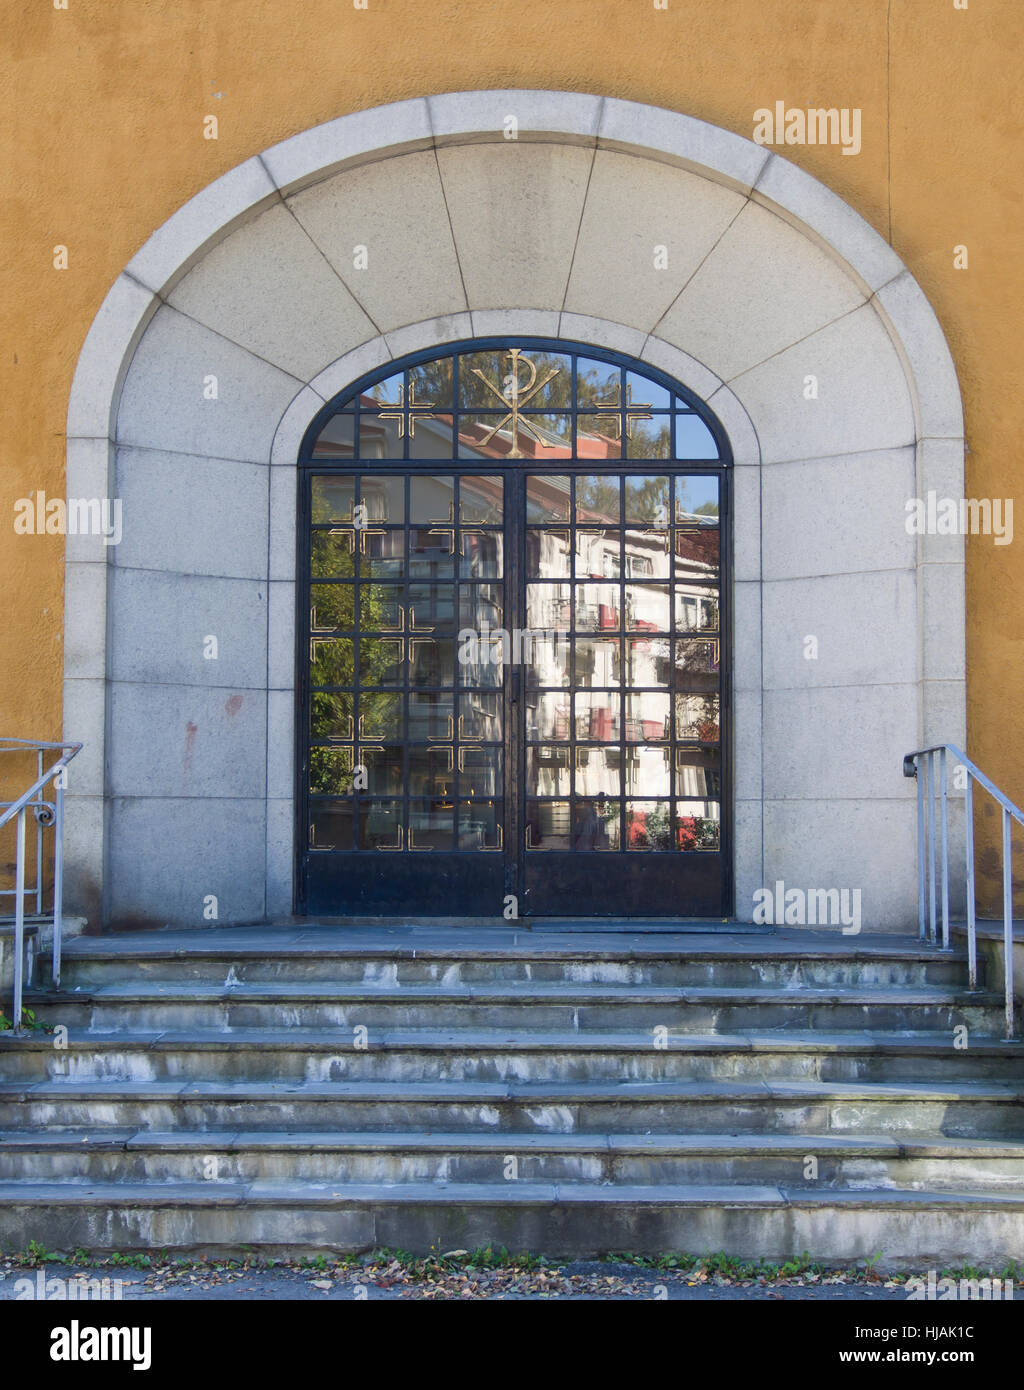 Arched main doorway ,entrance to Iladalen church in Oslo Norway, glass doors reflecting apartment blocks and surroundings, - Stock Image